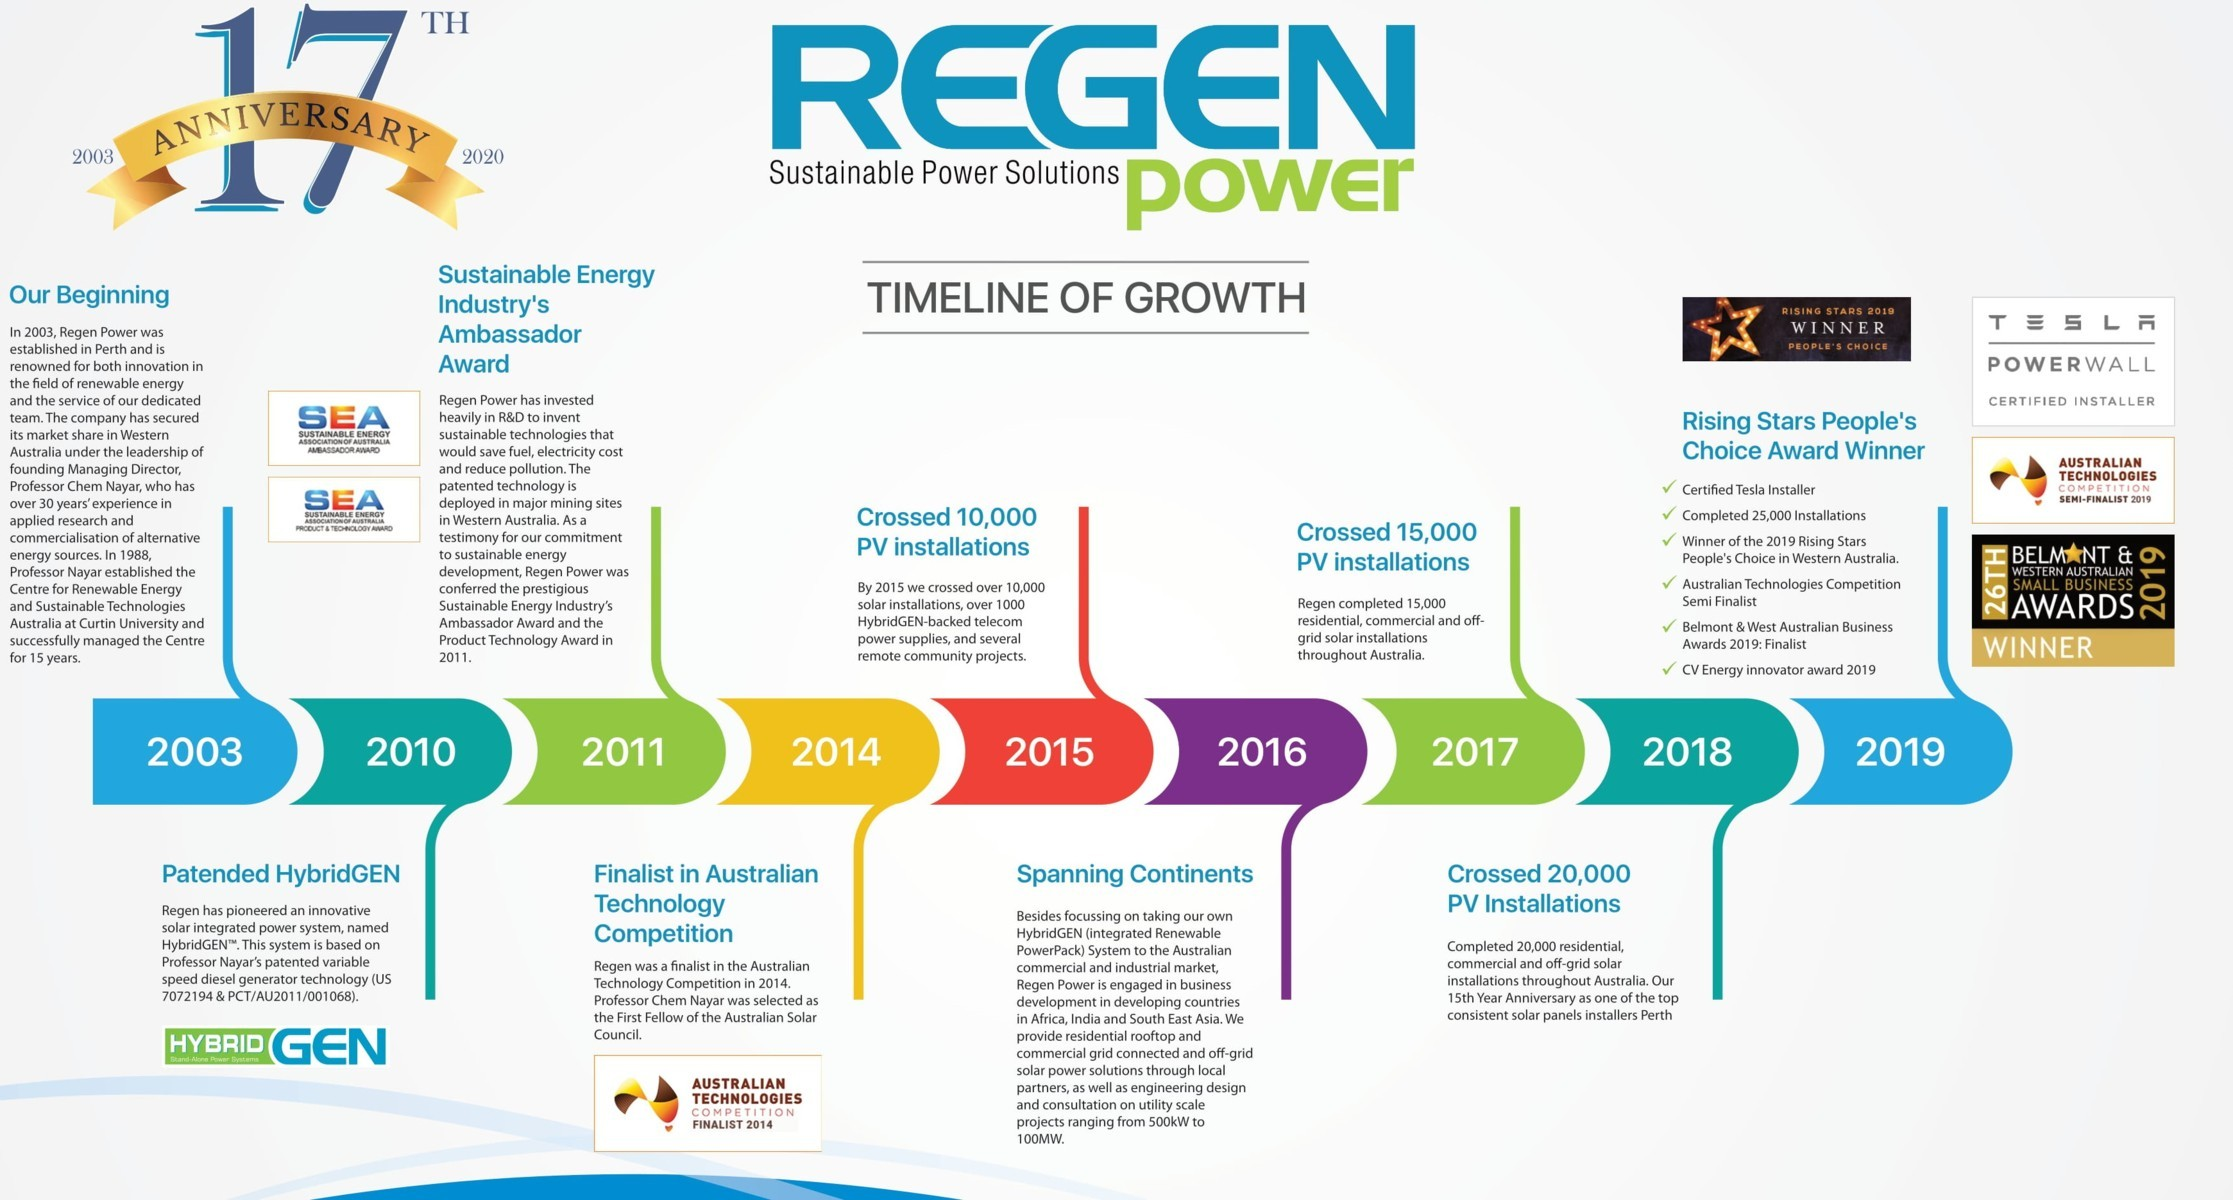 renewable energy company 17 year legacy in Australia